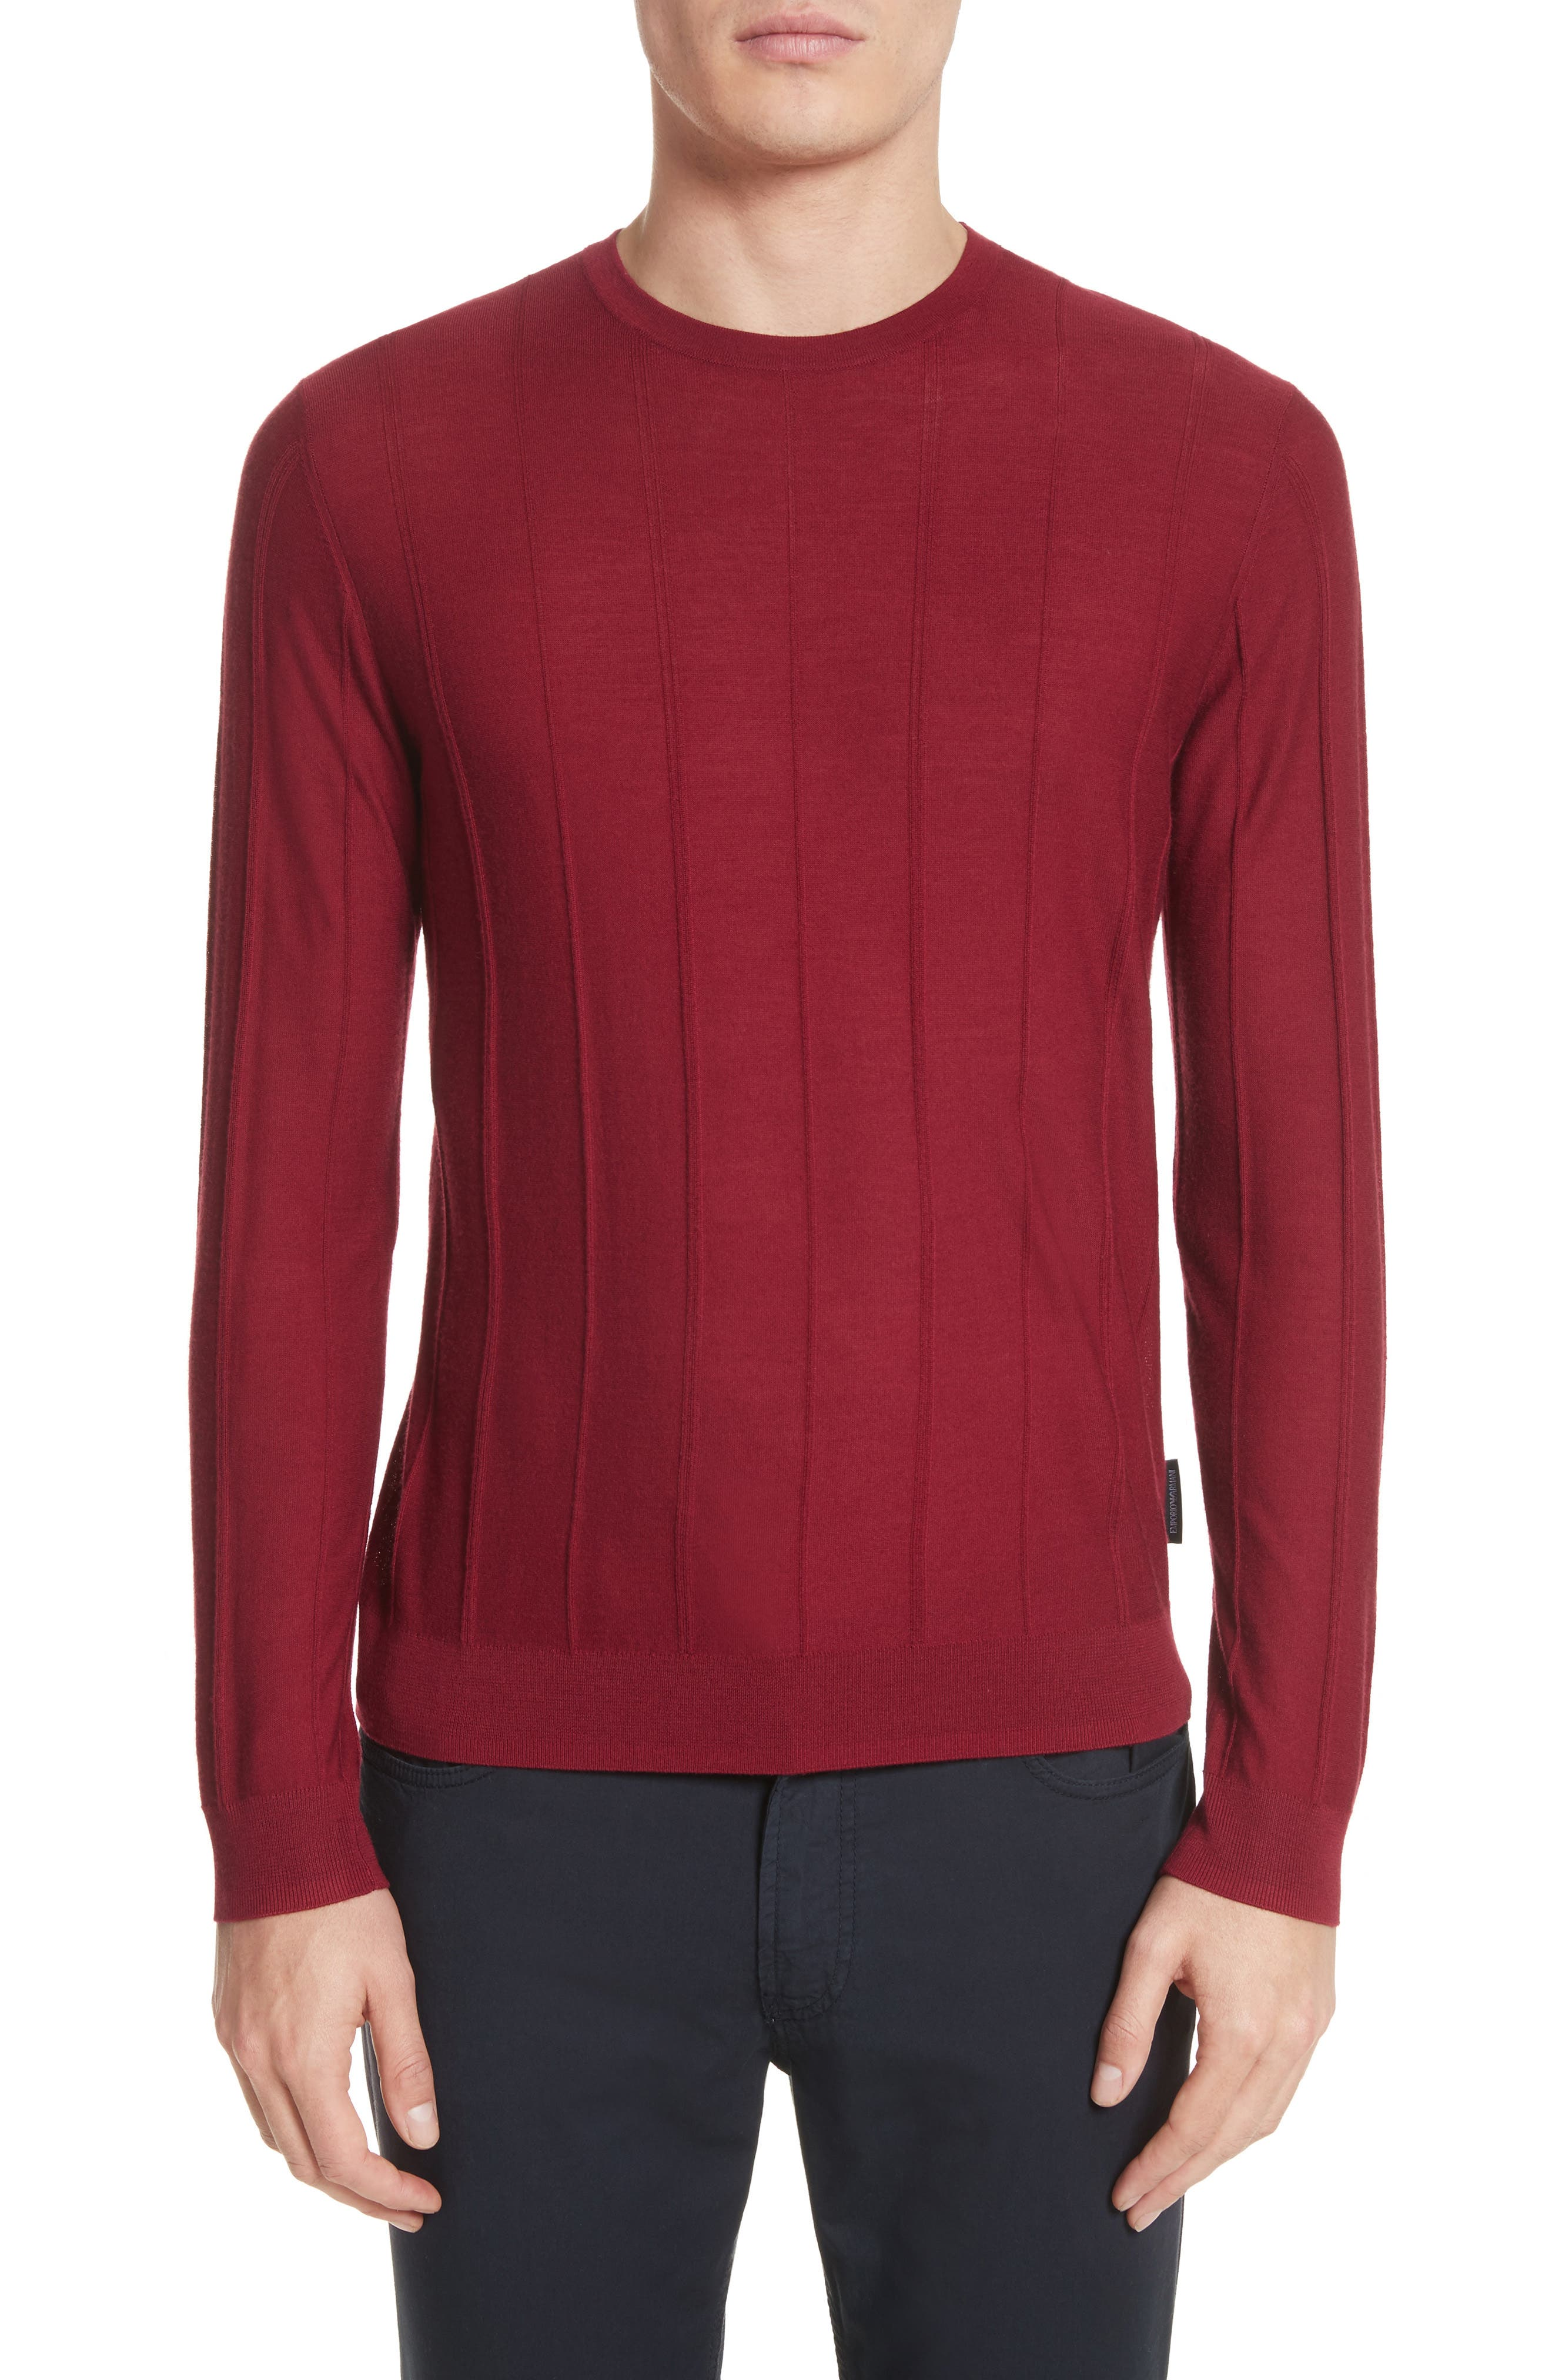 Alternate Image 1 Selected - Emporio Armani Slim Fit Wool Crewneck Sweater